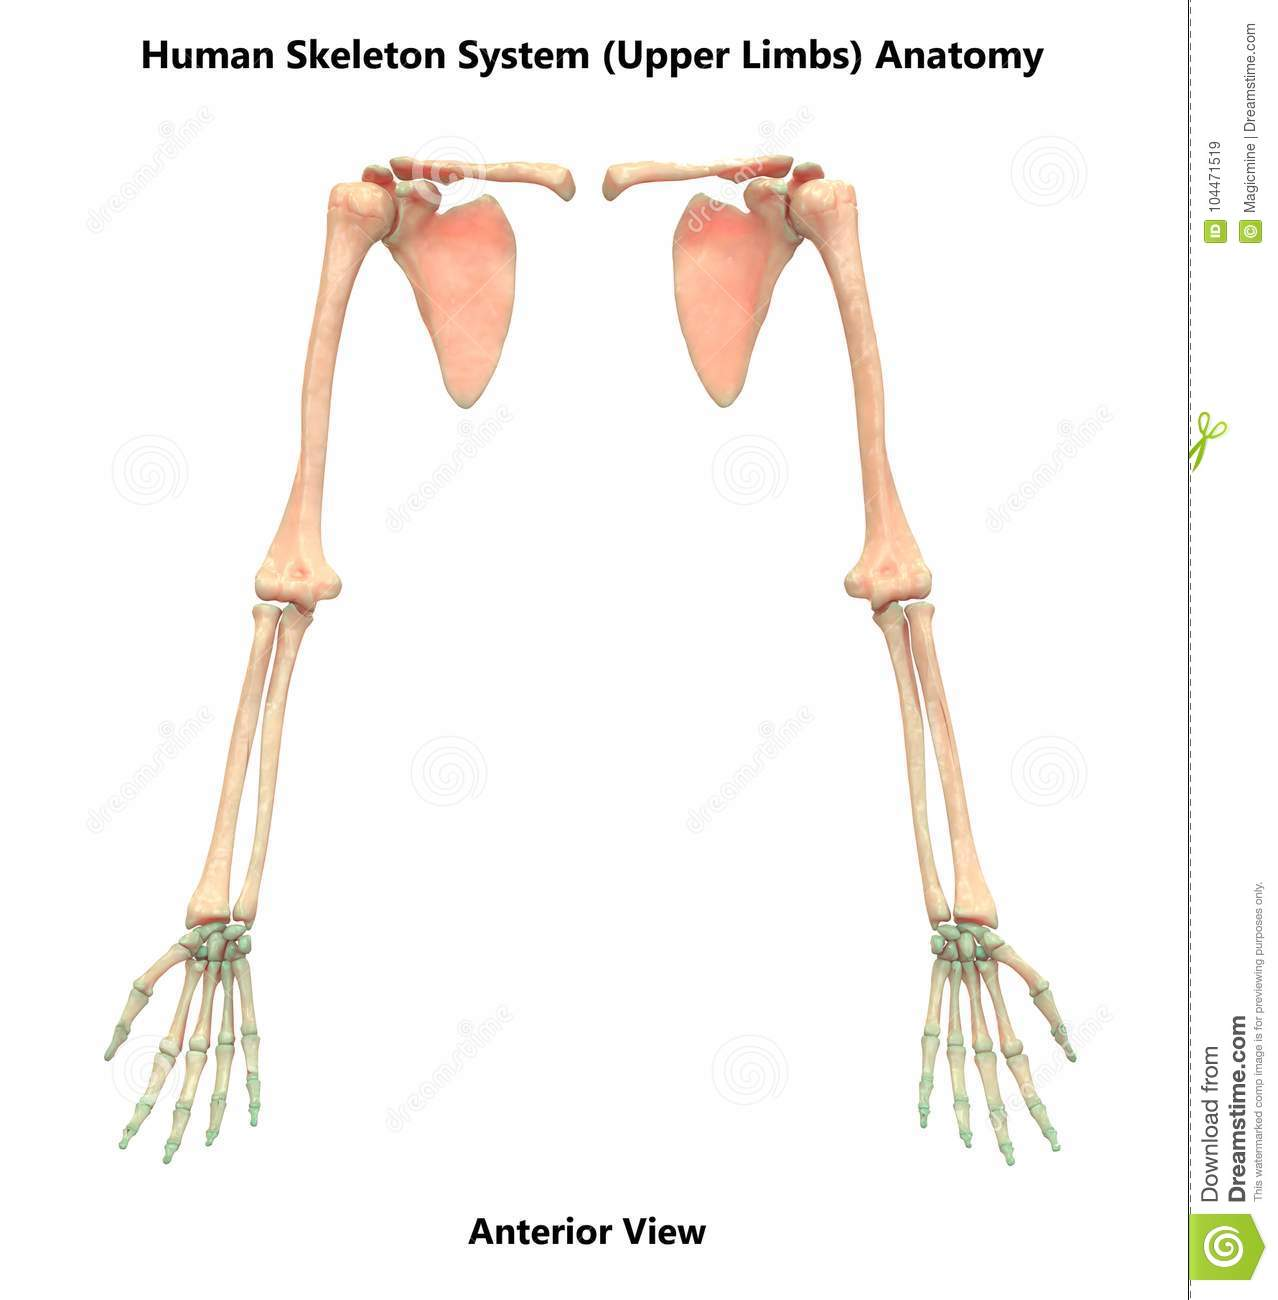 Human Skeleton System Upper Limbs Bones Hand Joints Anatomy Stock